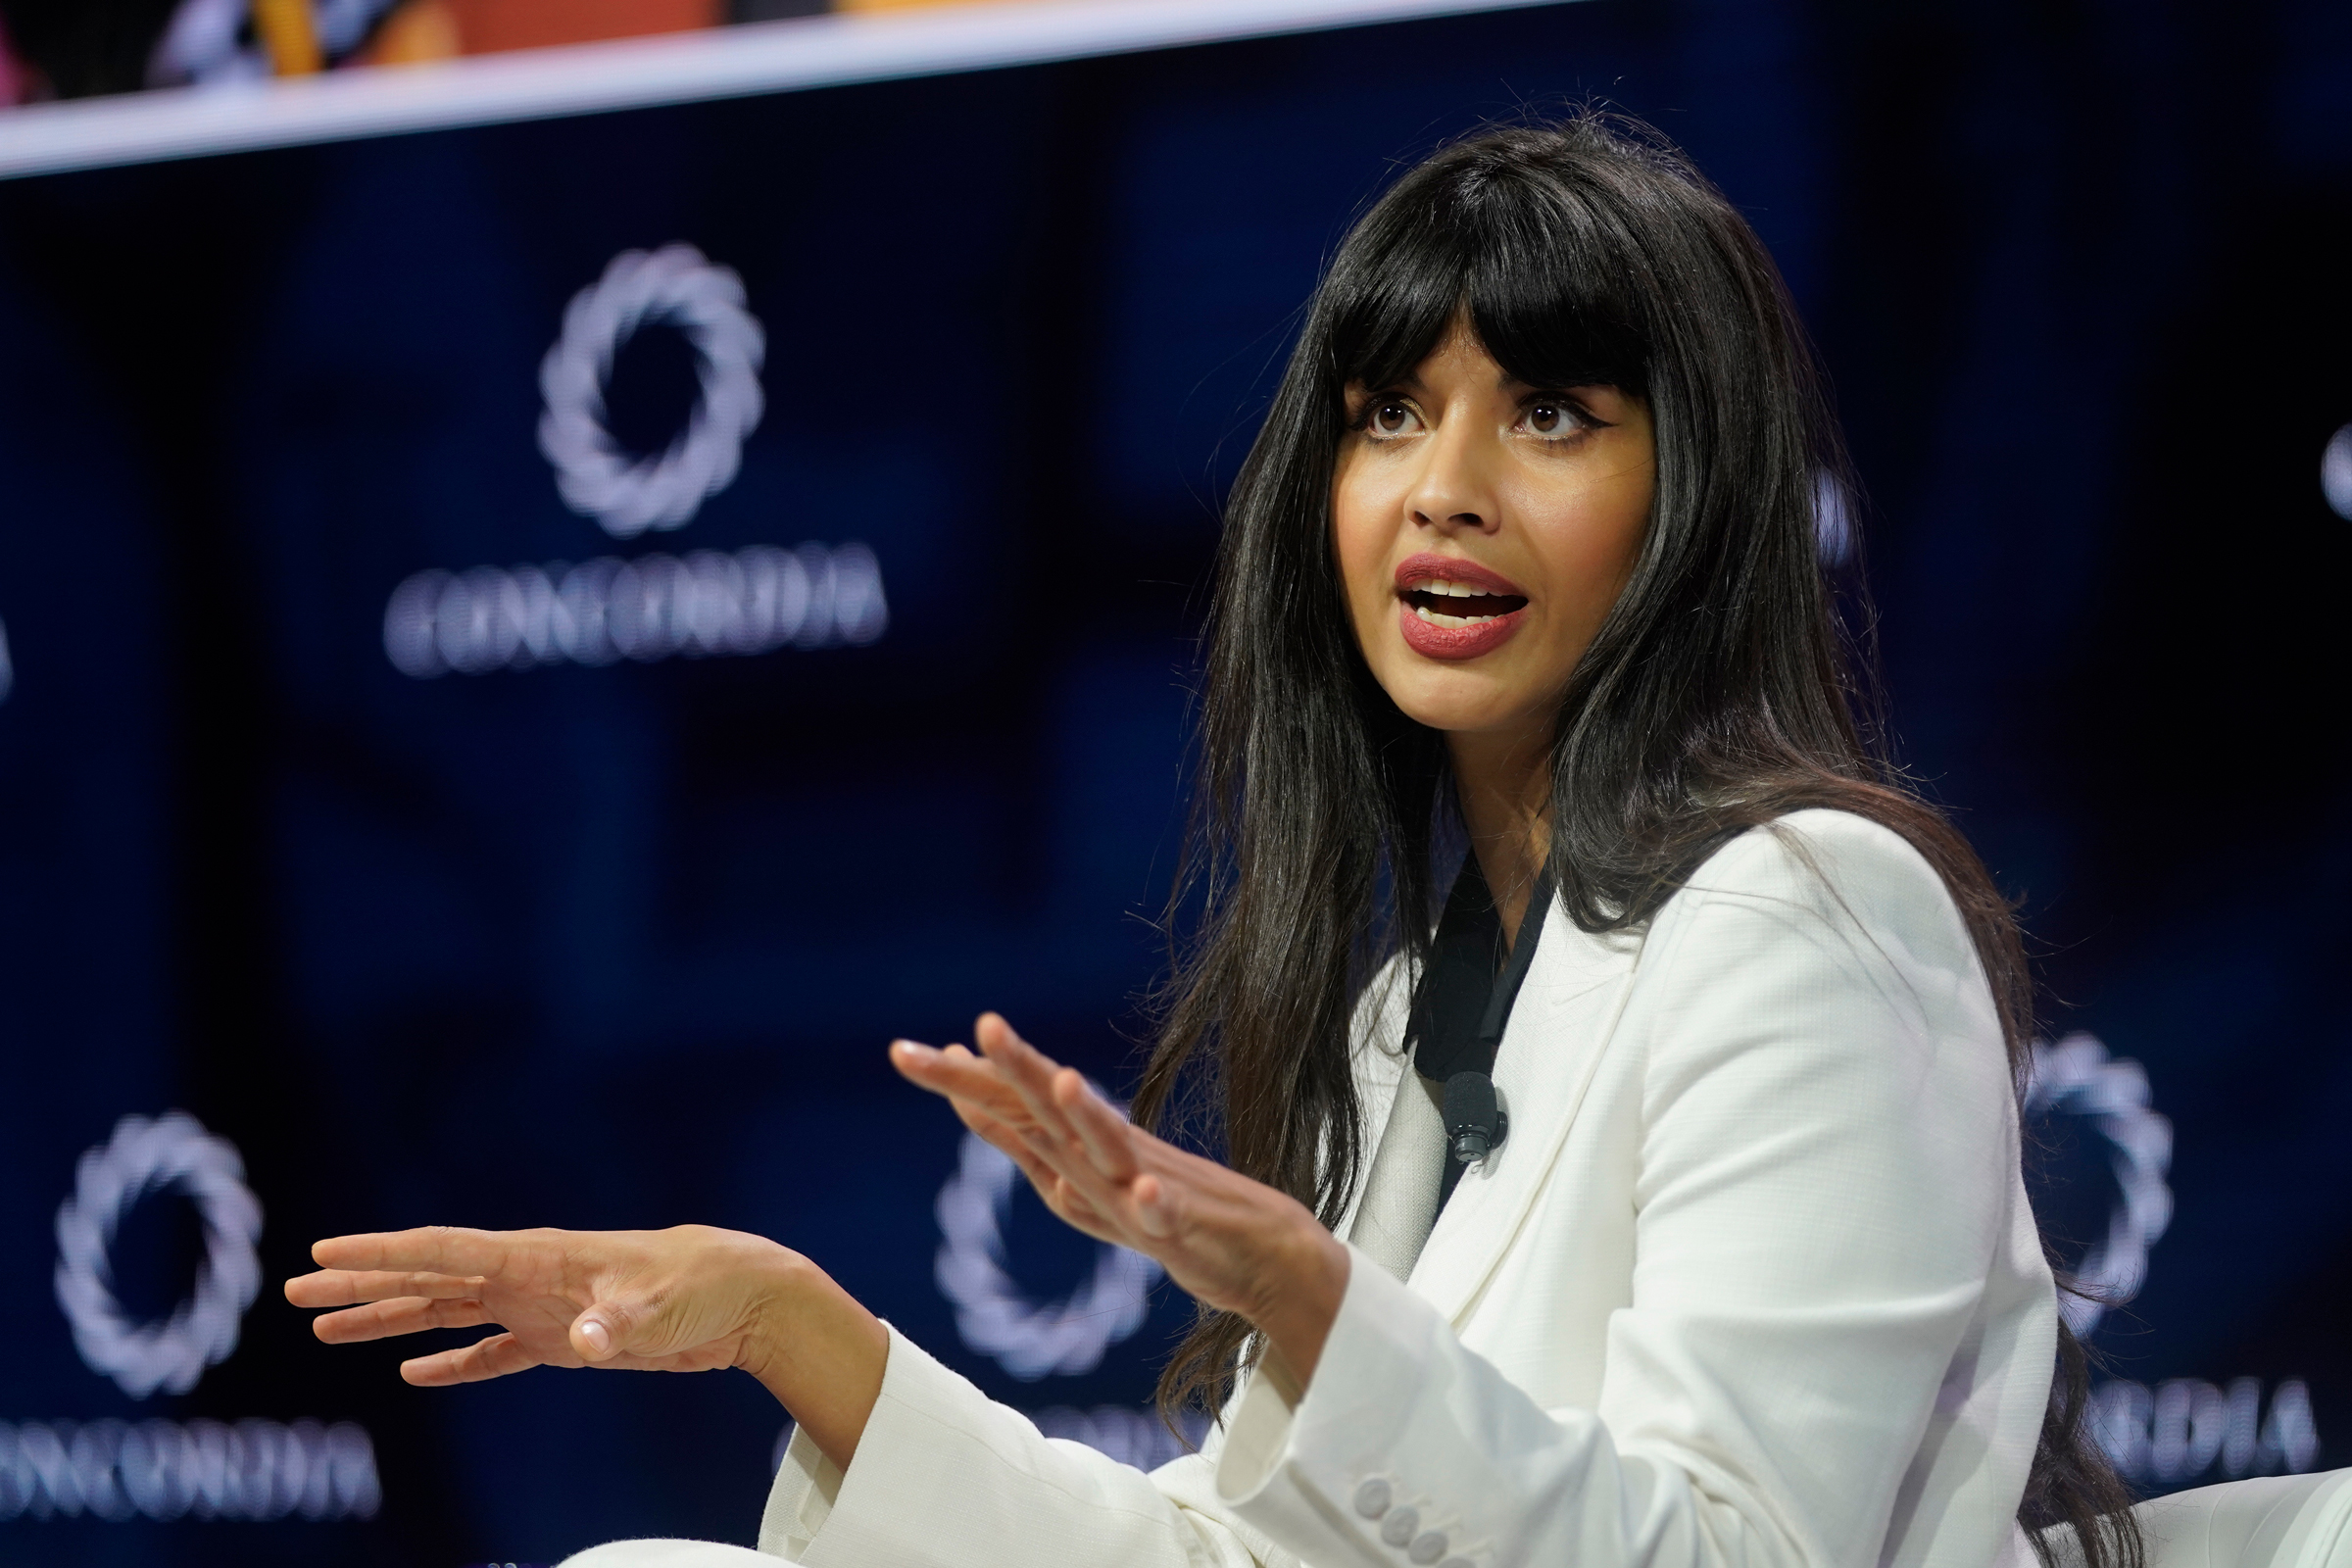 Jameela Jamil, a British Indian woman, looks off camera mid sentence. Her arms are raised suggesting passionate speech.